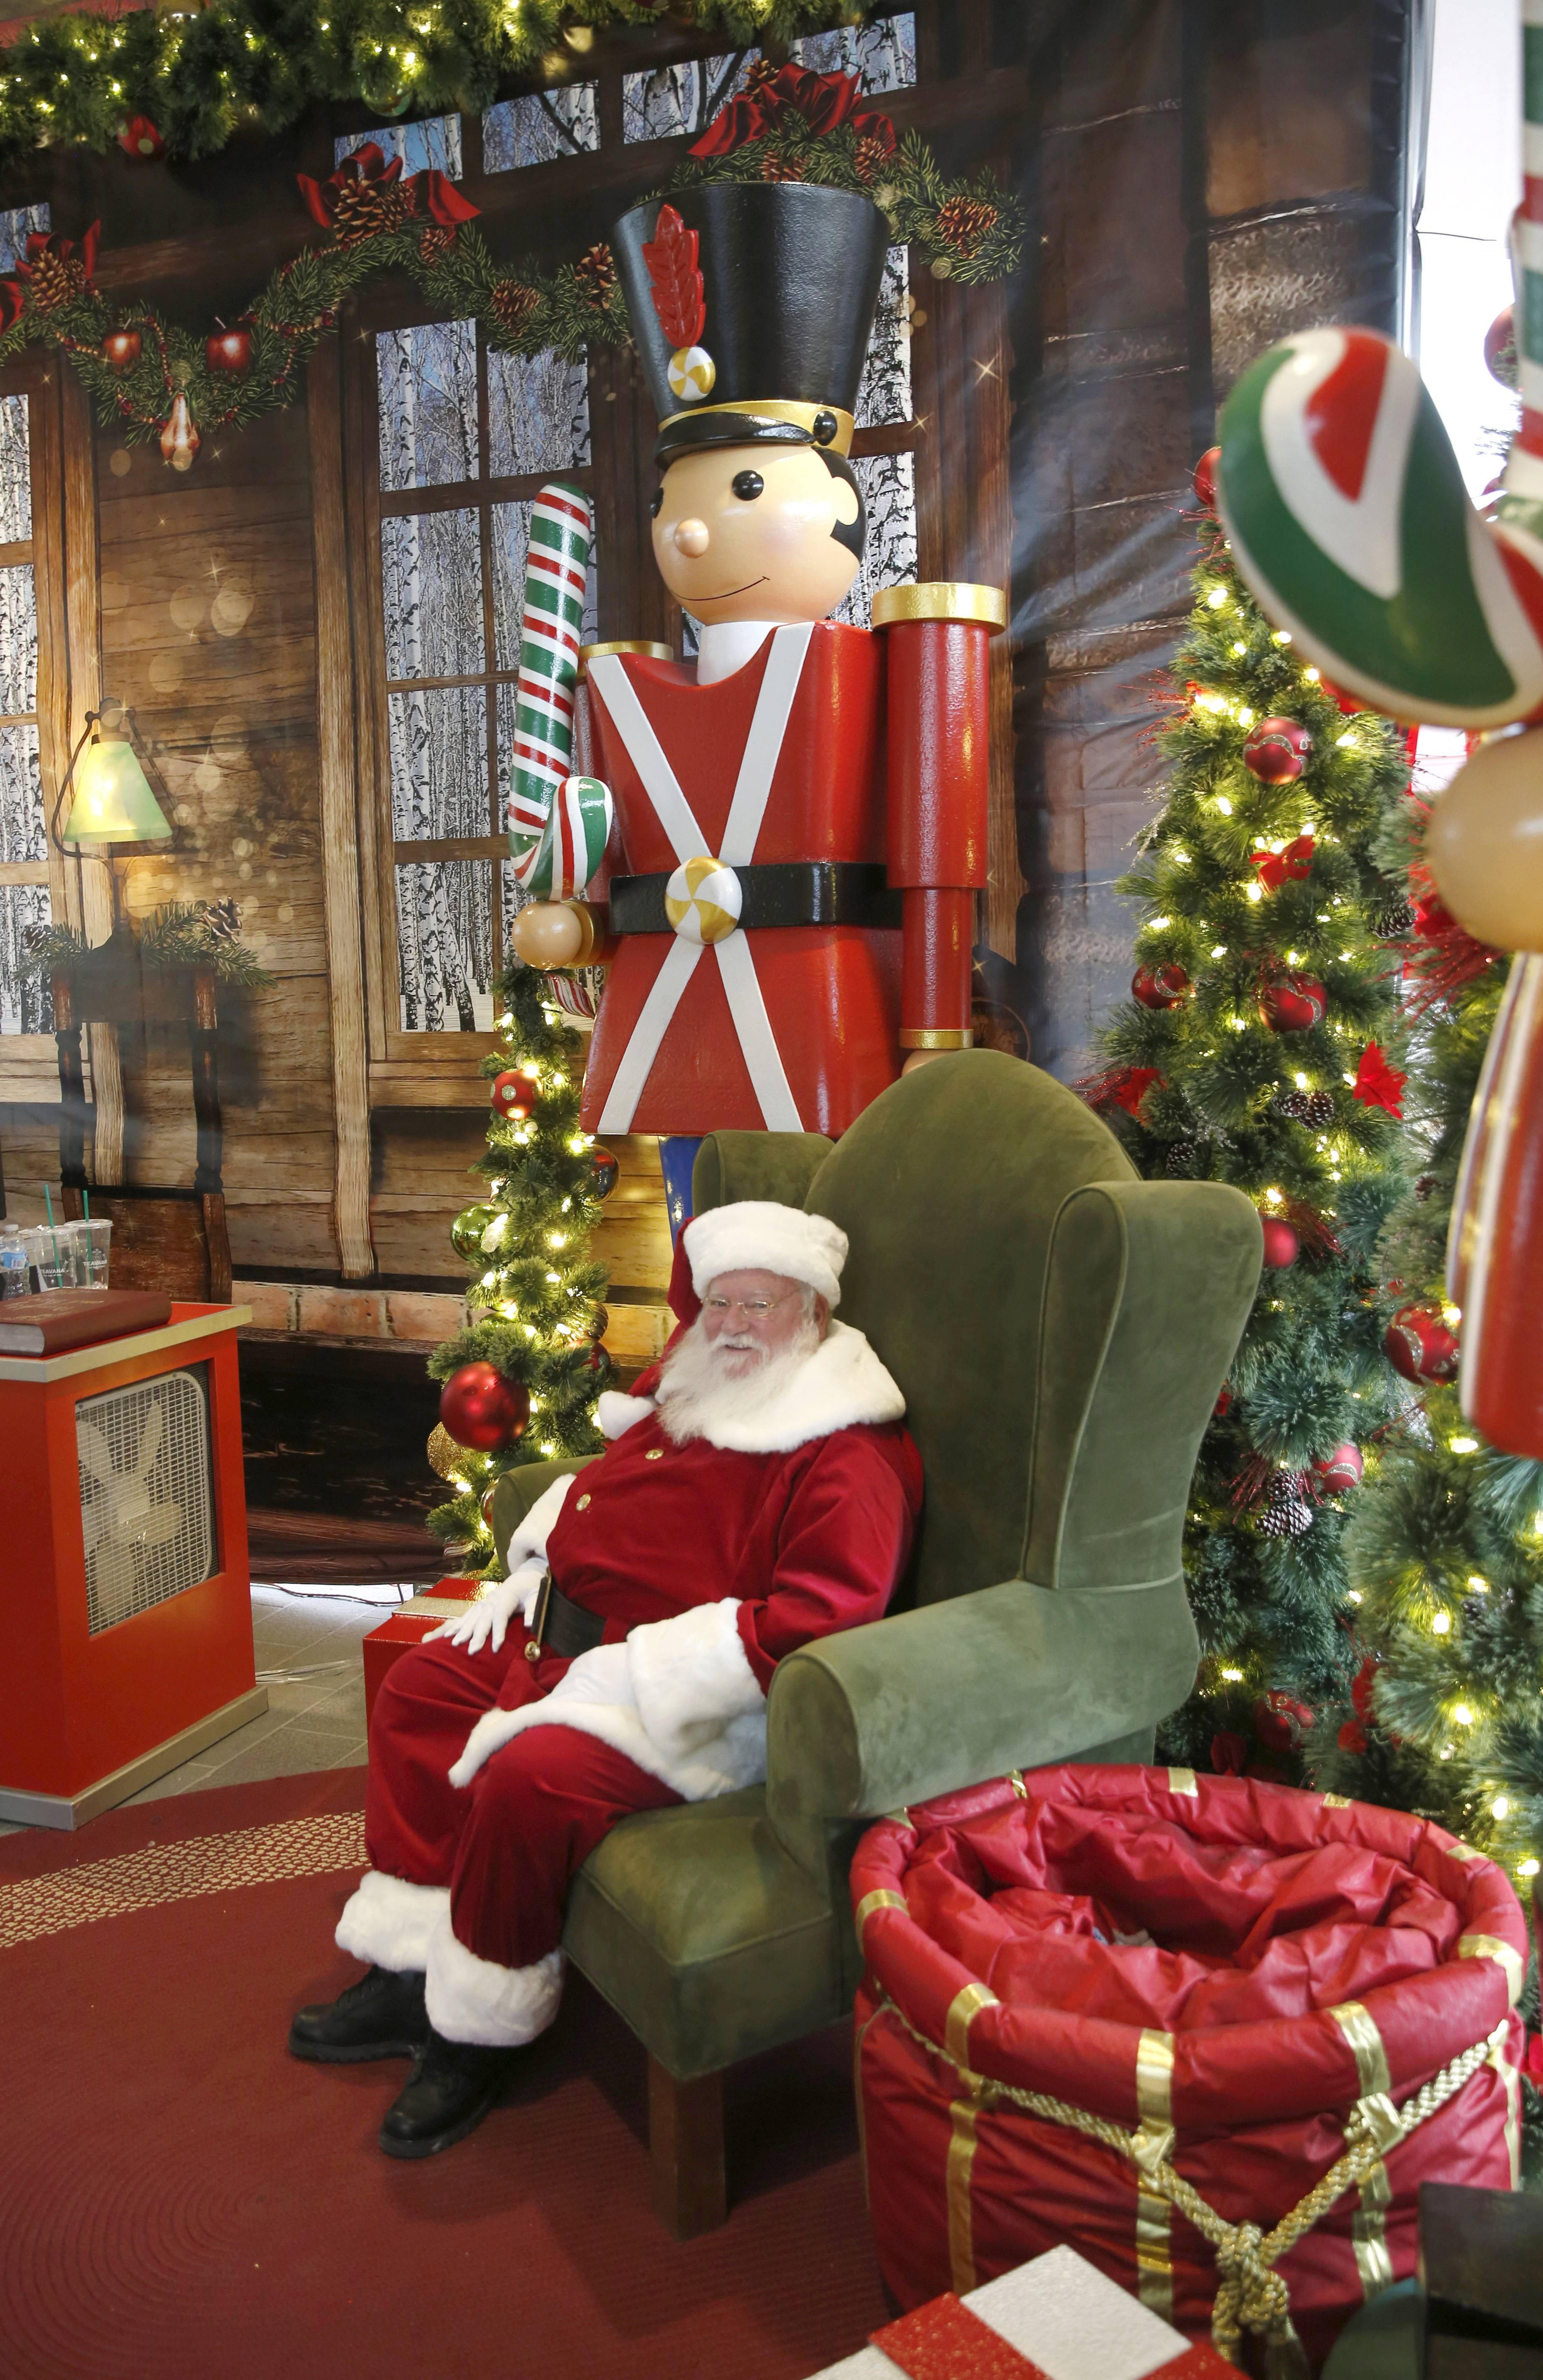 Santa Claus tries to unwind during the busy holiday season.